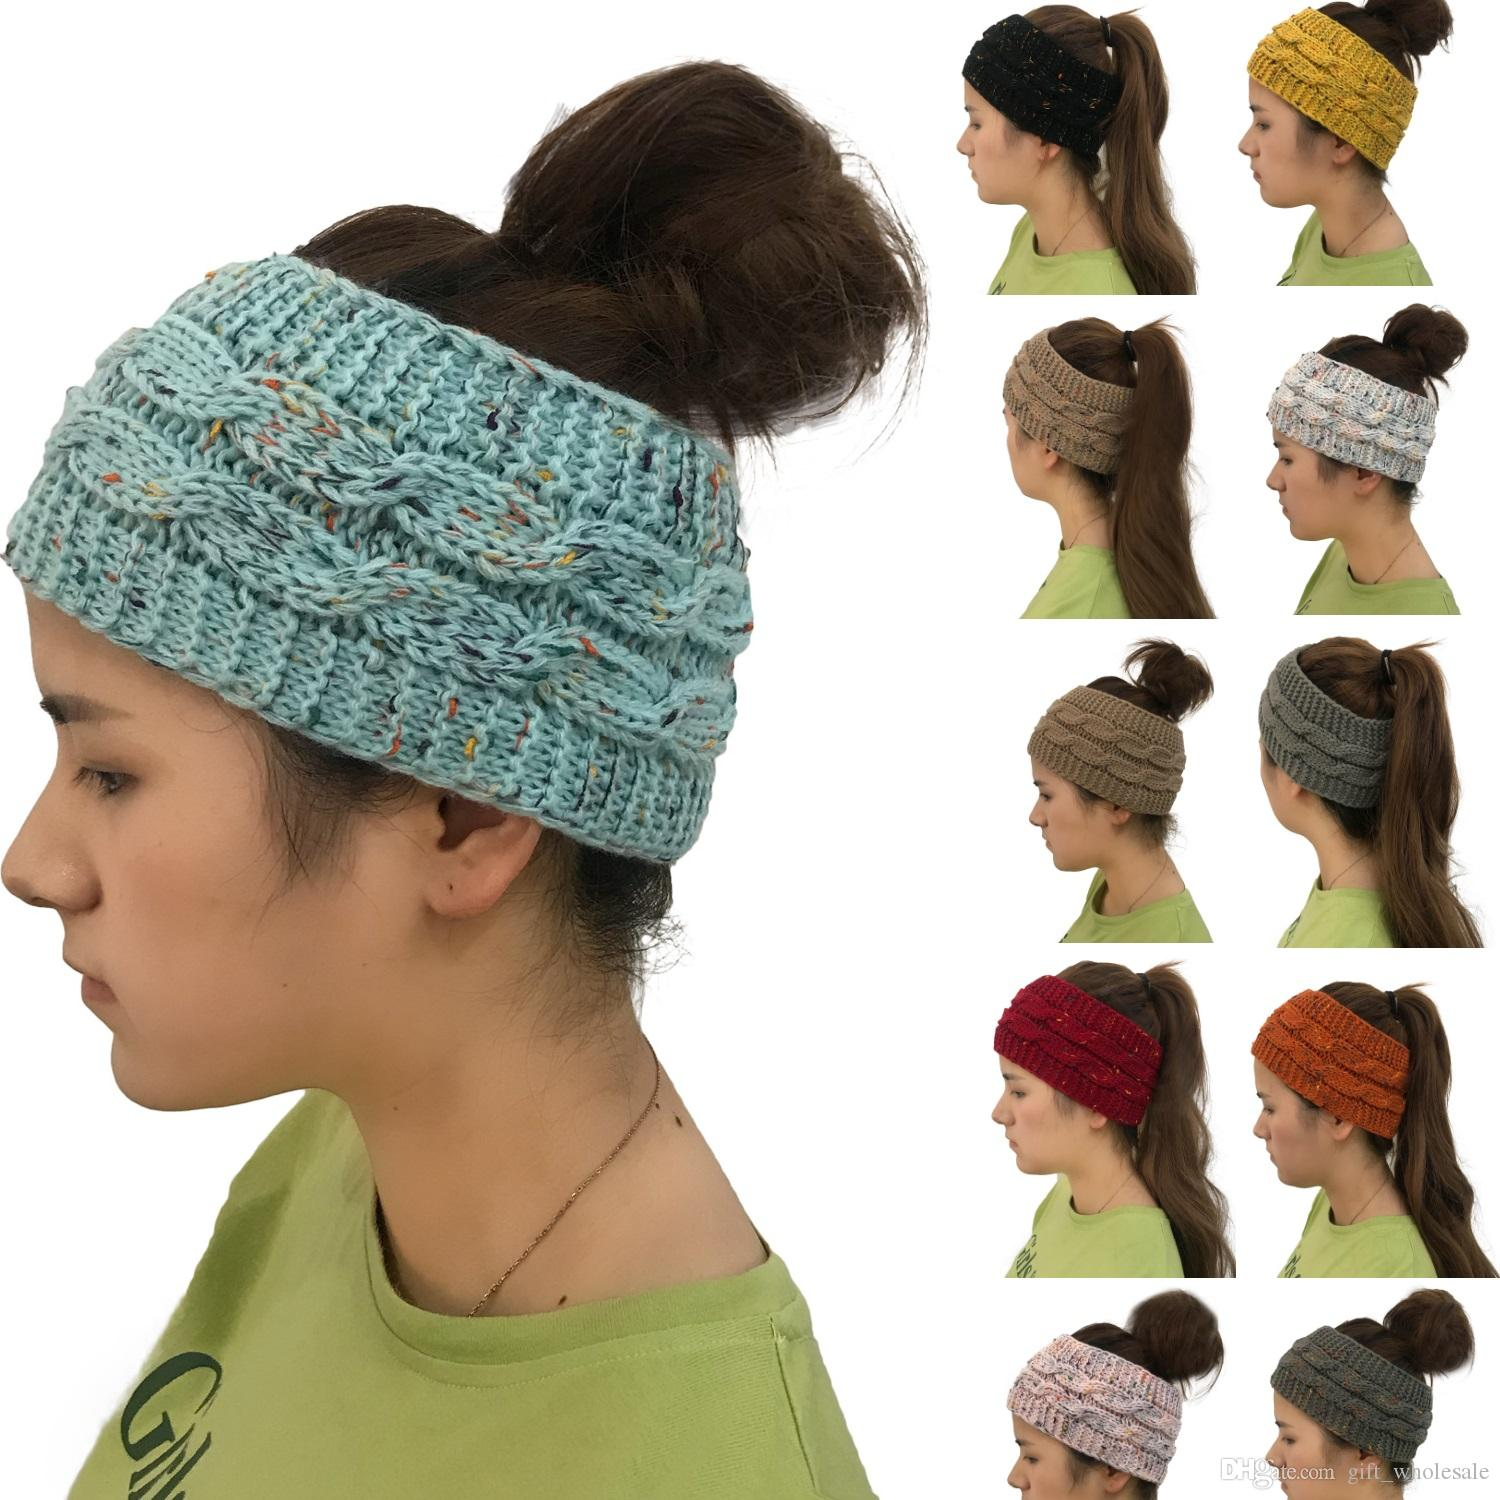 2019 DHL Free Knitted Crochet Headband Women Winter Sports Headwrap  Hairband Turban Head Band Ear Warmer Women Cap Headbands From  Gift wholesale 4f8765841